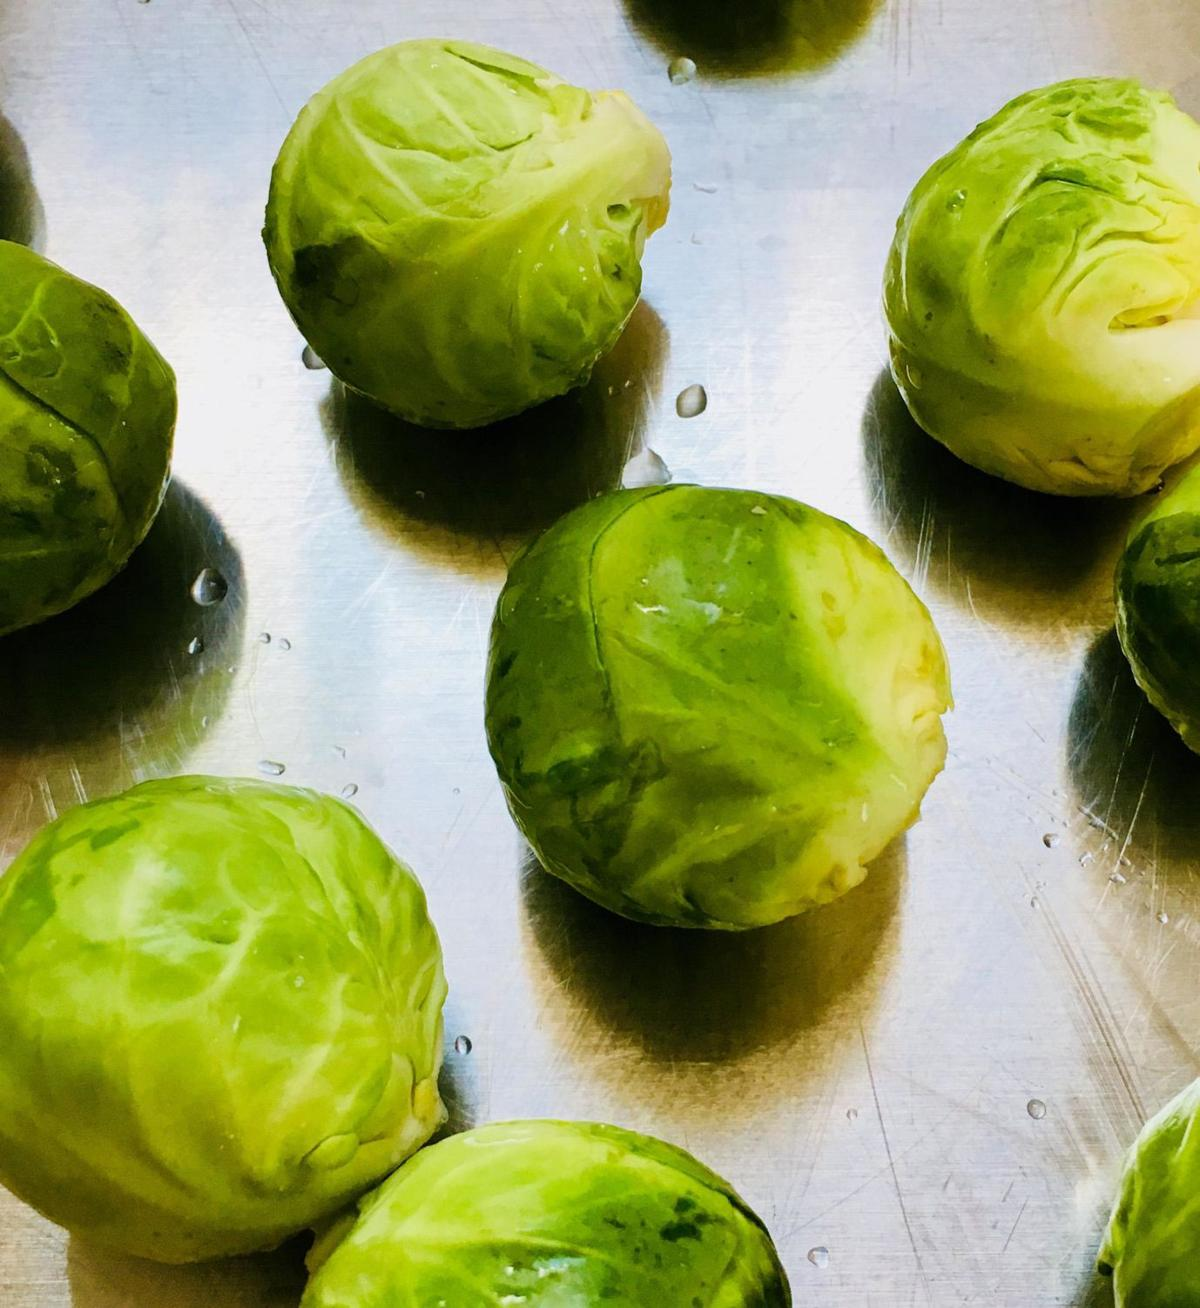 ROB RABINE: A case of Brussels sprouts mania